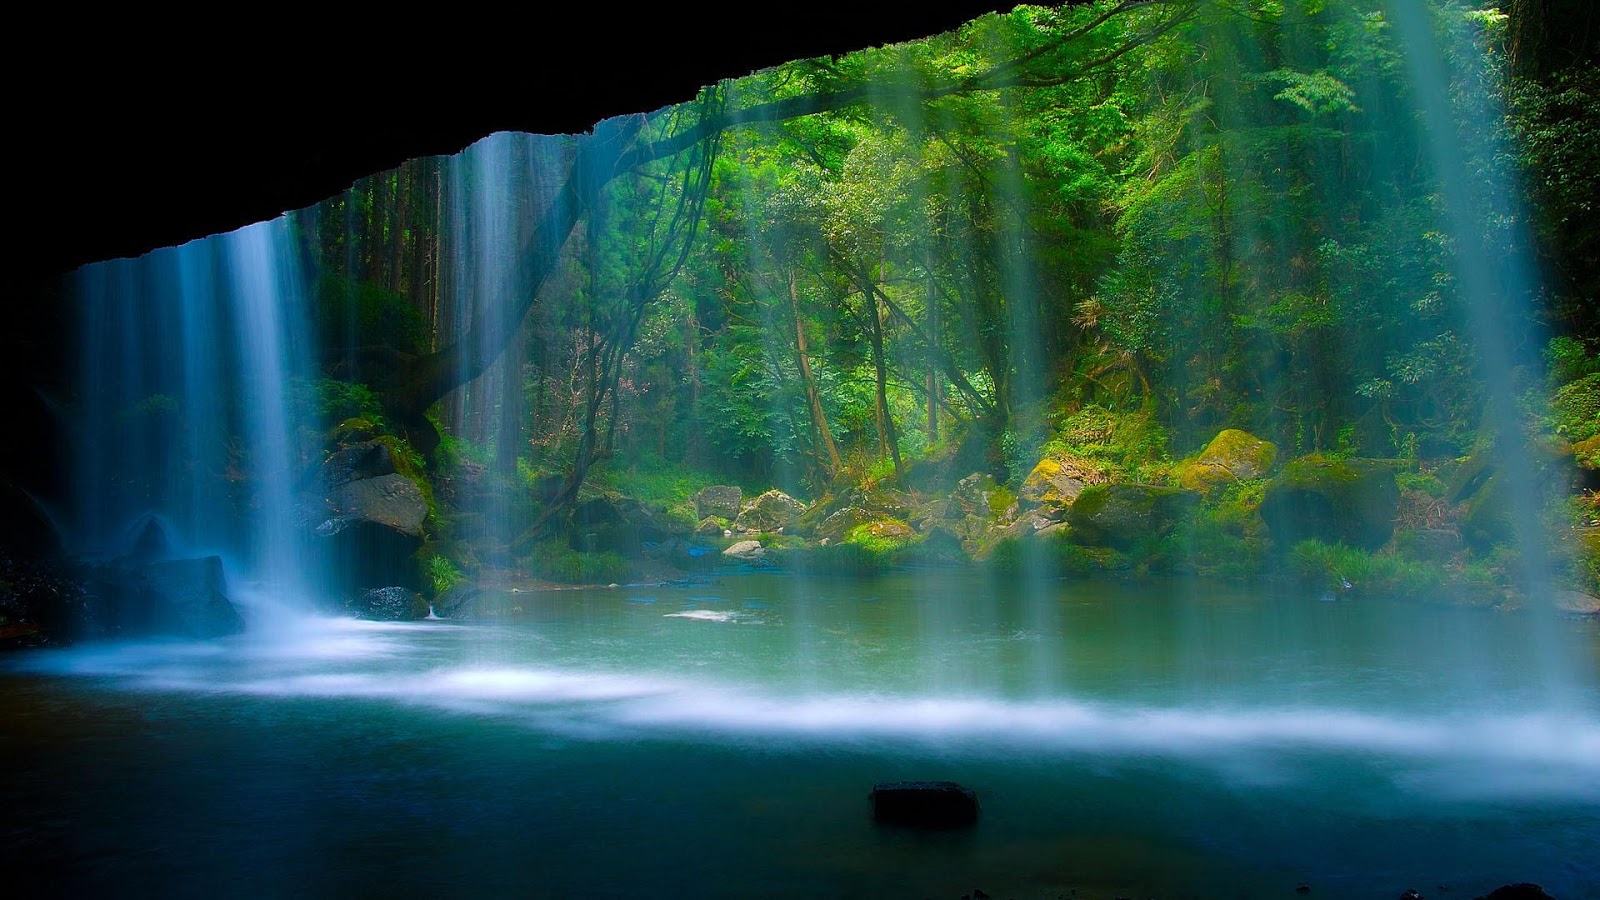 Free Download The Your Web Wallpaper For Desktop Computer Desktop Wallpaper 1600x900 For Your Desktop Mobile Tablet Explore 54 Backgrounds For Desktop Computers Free Desktop Wallpaper Computers